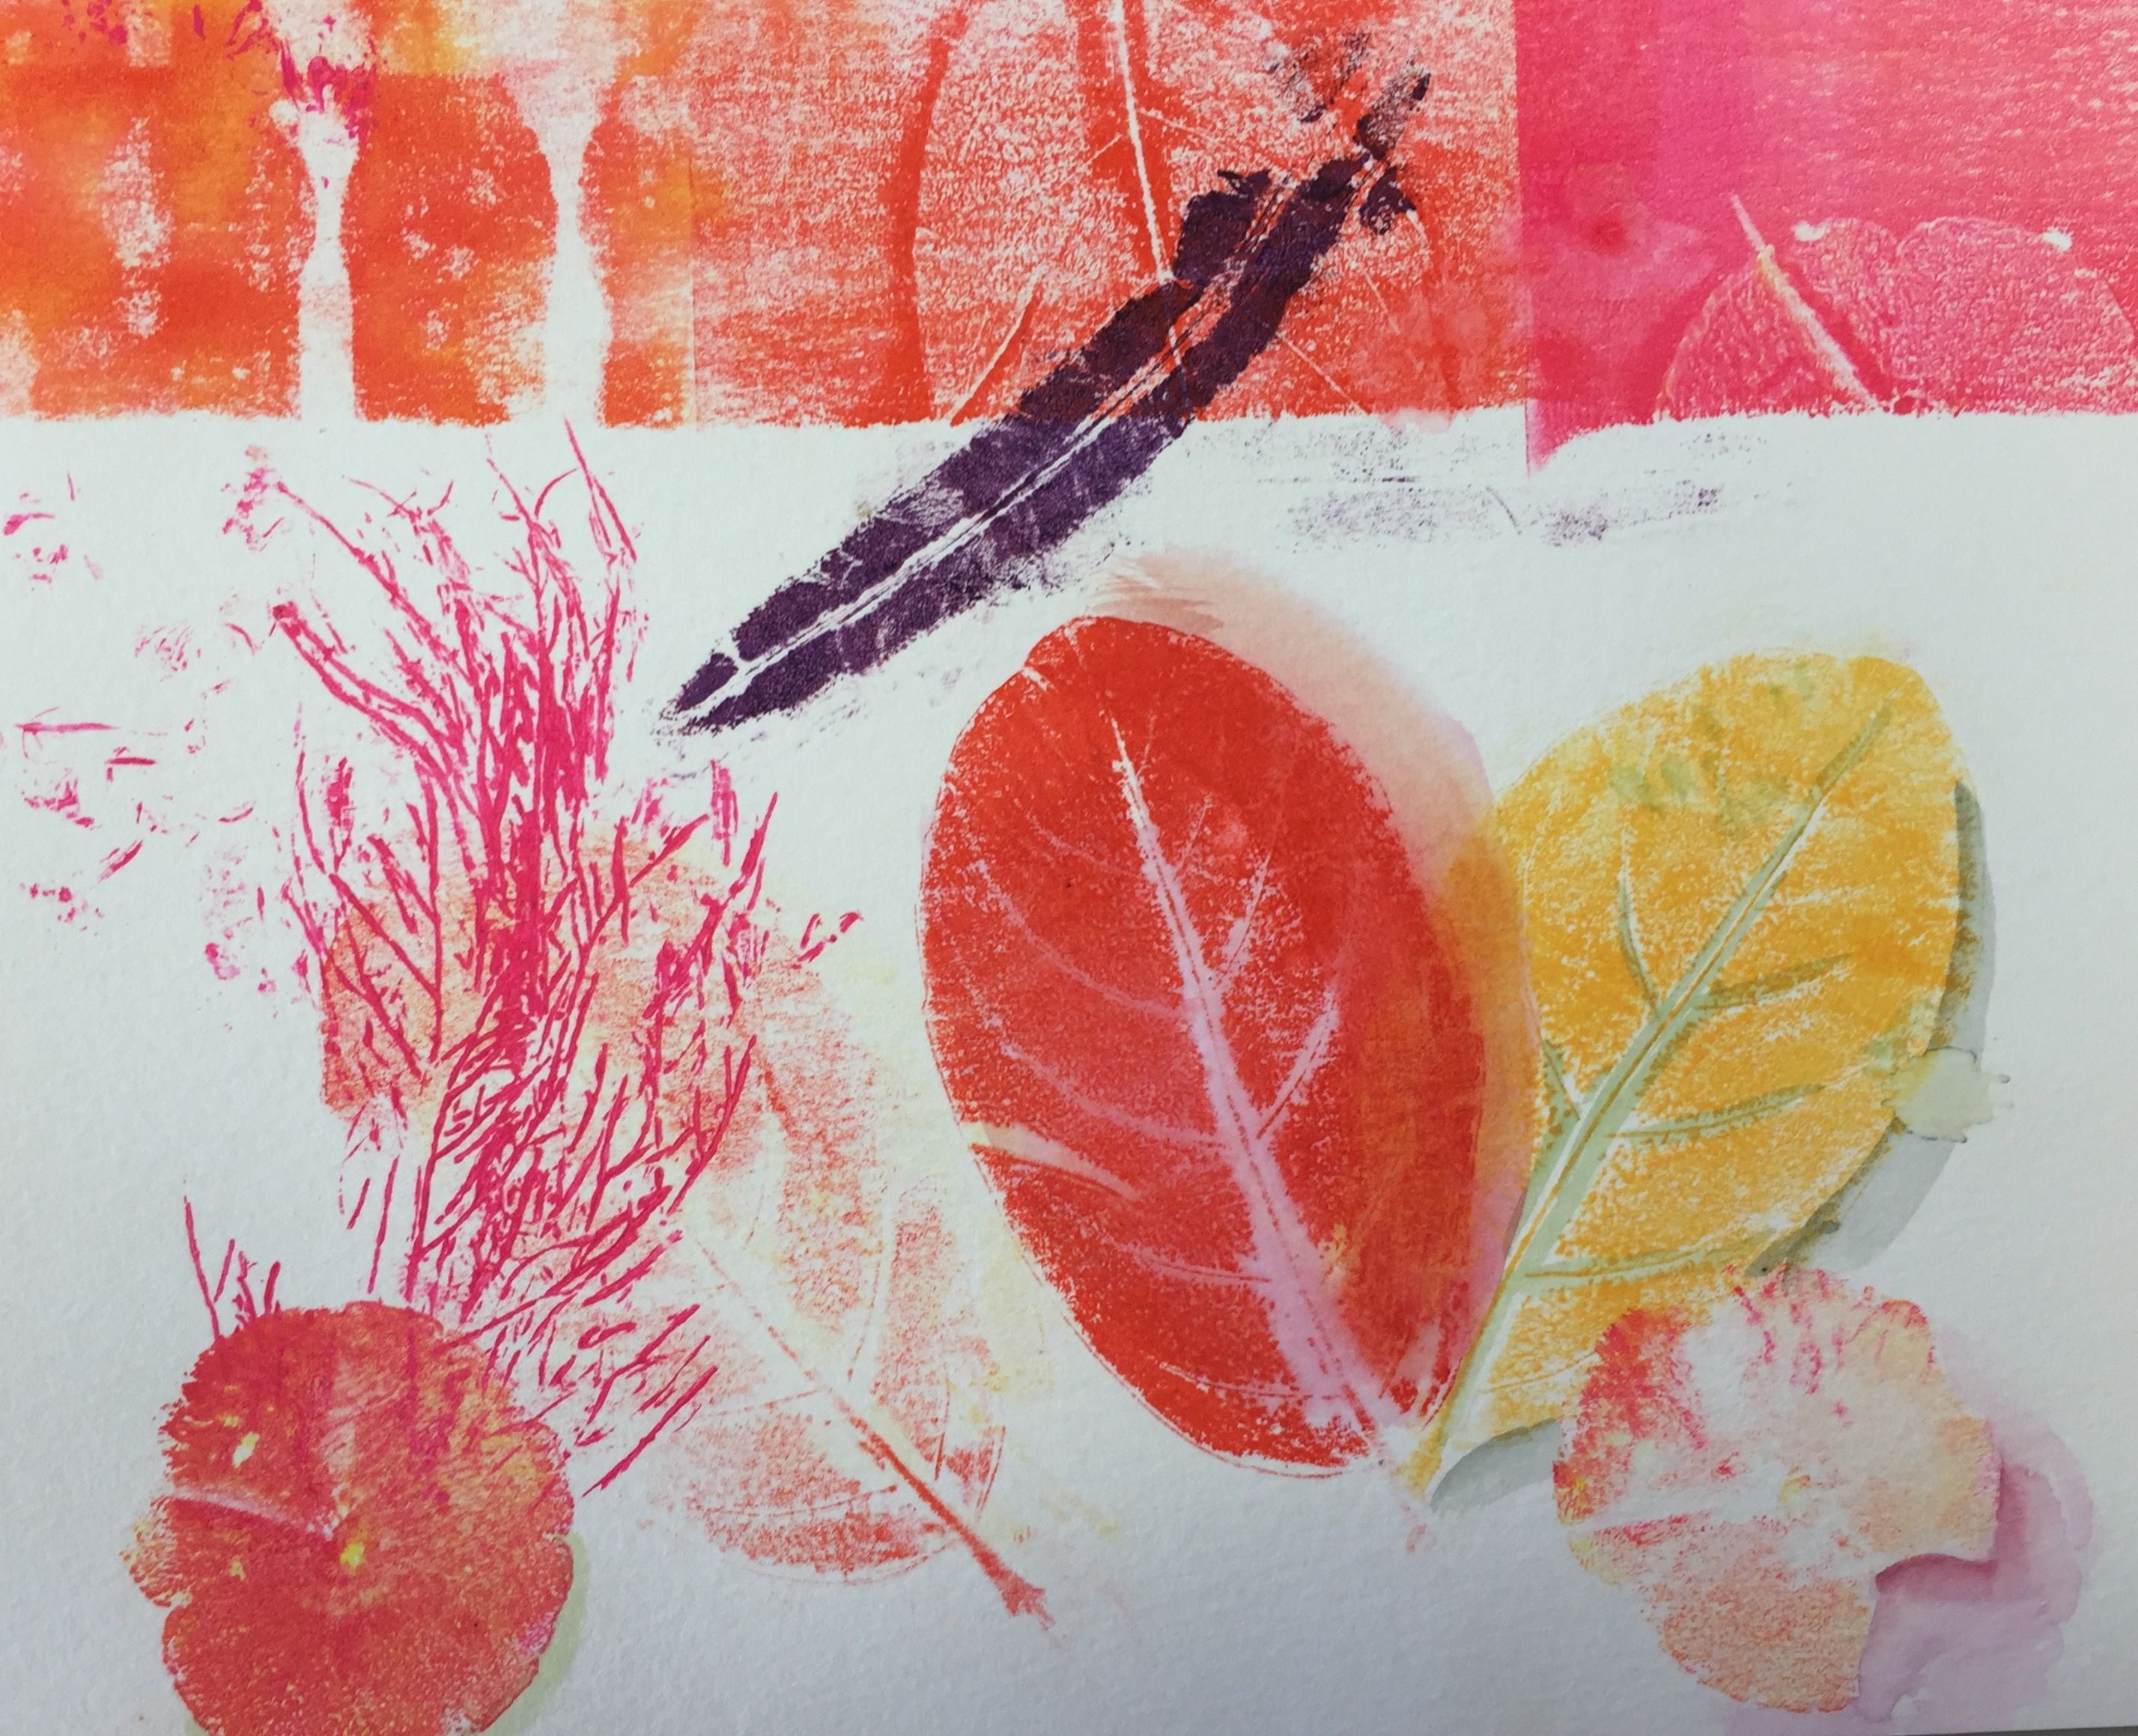 Hand Printing From Nature Block Printing Inks Watercolor On